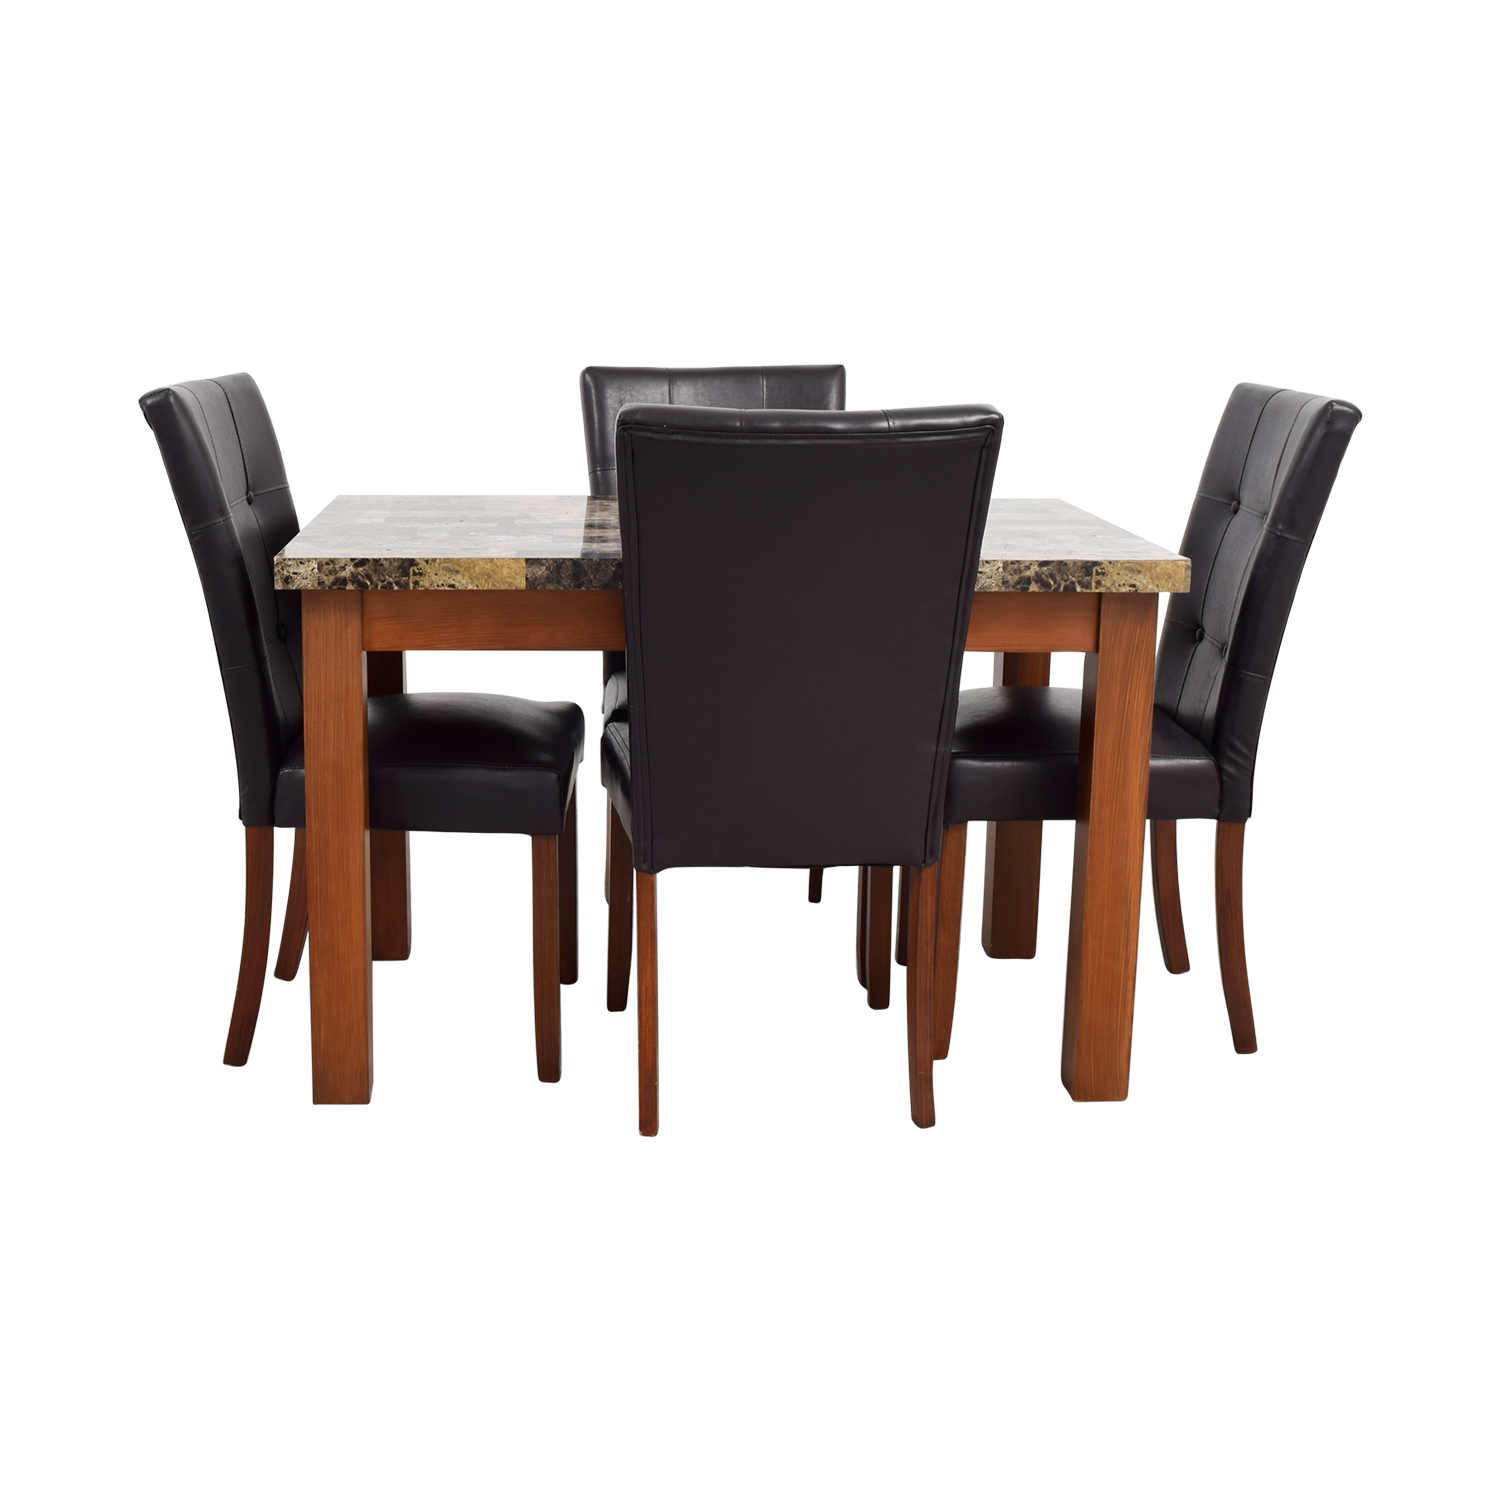 Faux Marble Dining Table with Brown Tufted Leather Chairs dimensions